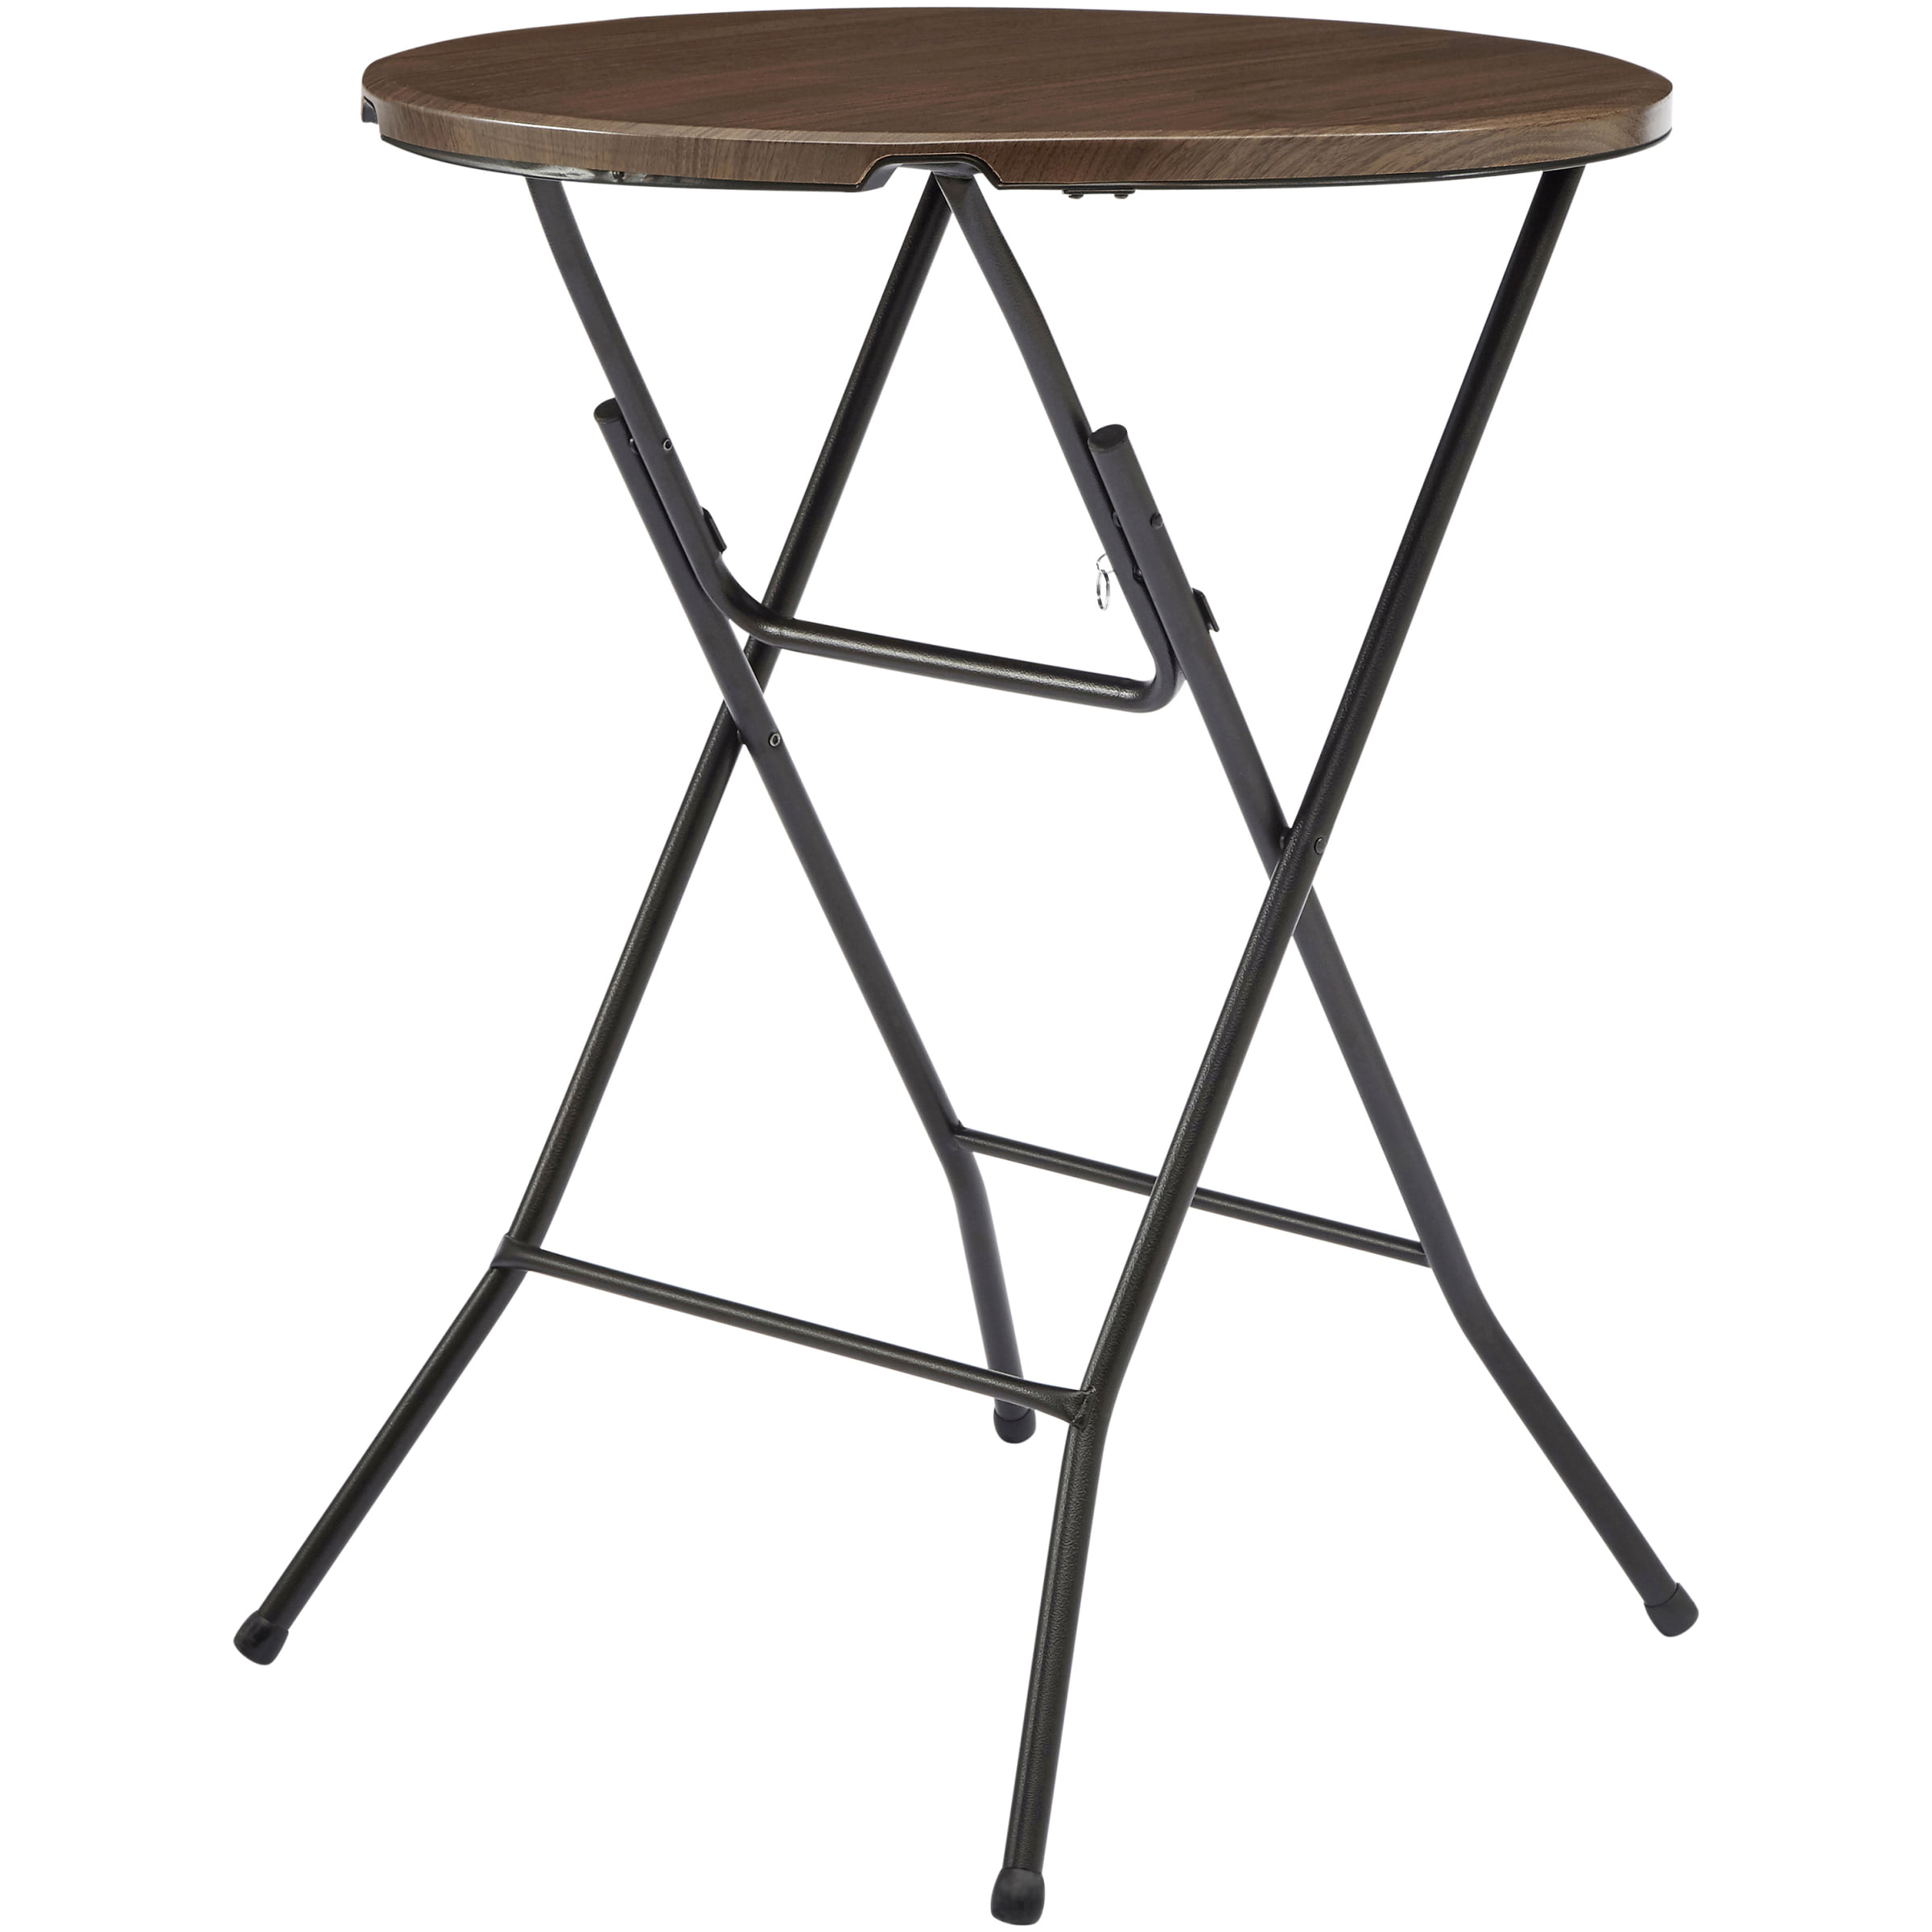 Folding Round Table Top.Mainstays 31 Round High Top Folding Table Walnut